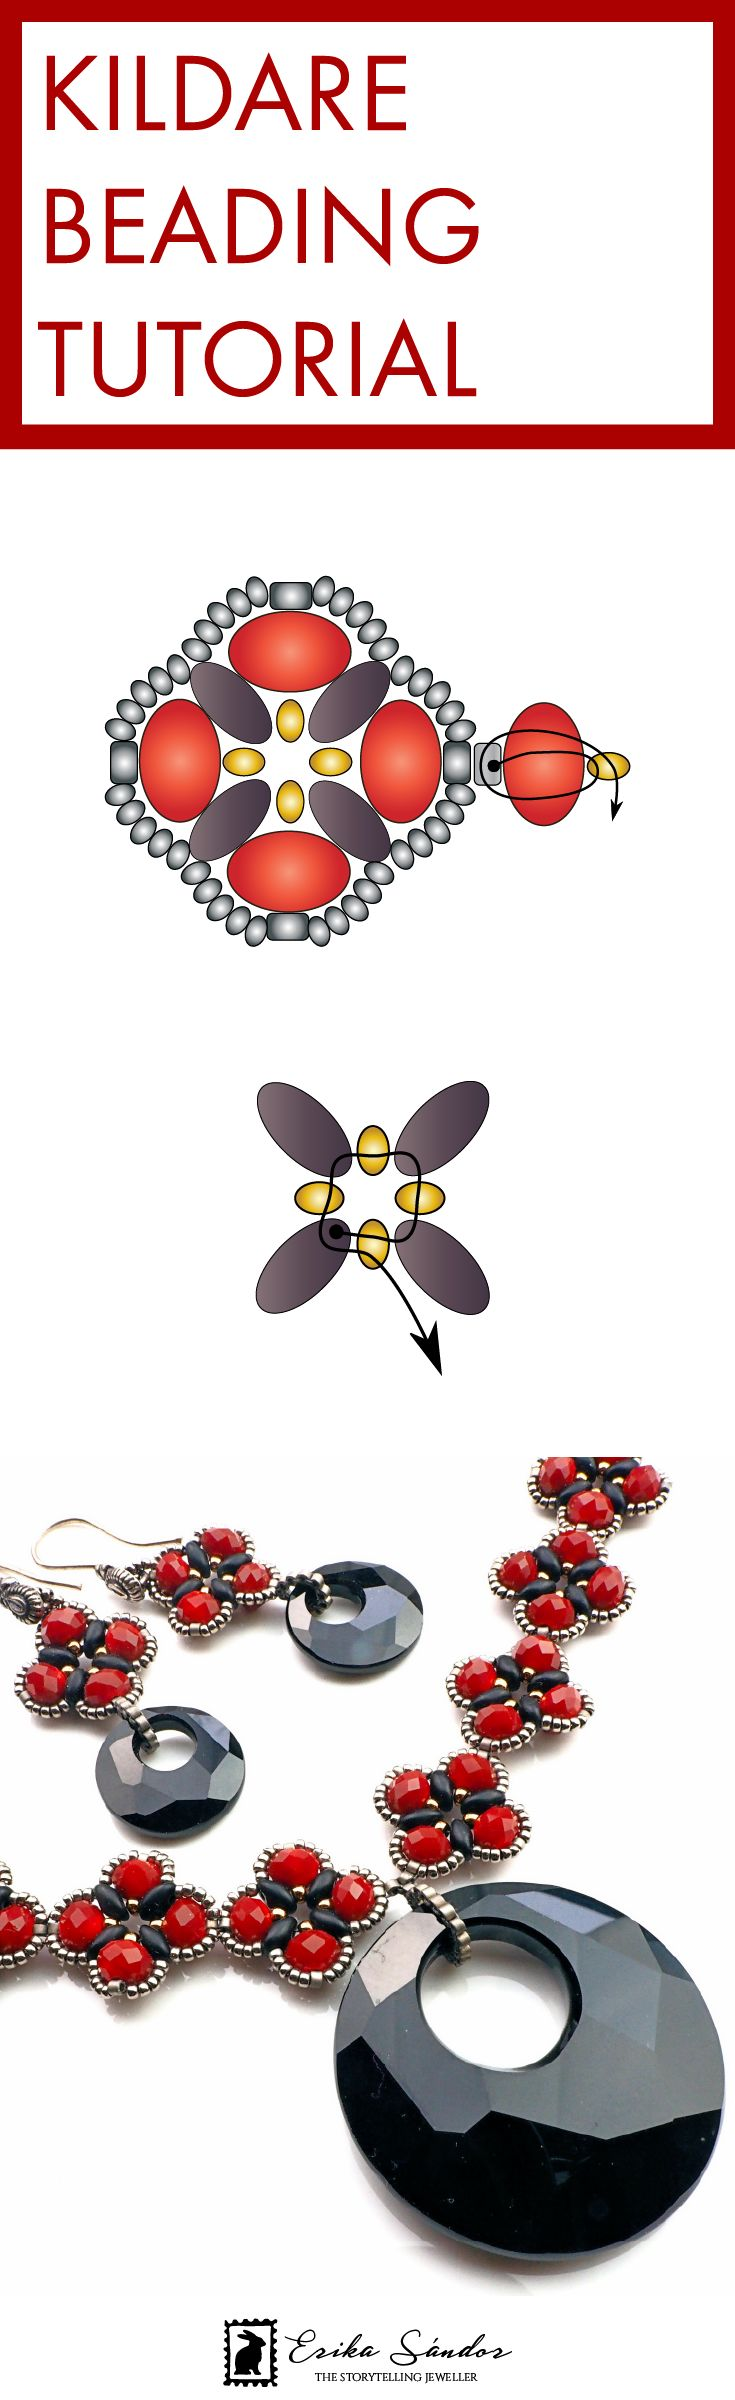 Beading tutorial / pattern / schema / instructions for beginner level beaders. Donut beads from glass, Superduo or Twin beads, Miyuki or Toho Japanese seed beads. Black and red necklace and earrings. With Swarovski Elements pendant bead. Design by Erika Sandor The Storytelling Jeweller. Beadsmith Inspiration Squad.